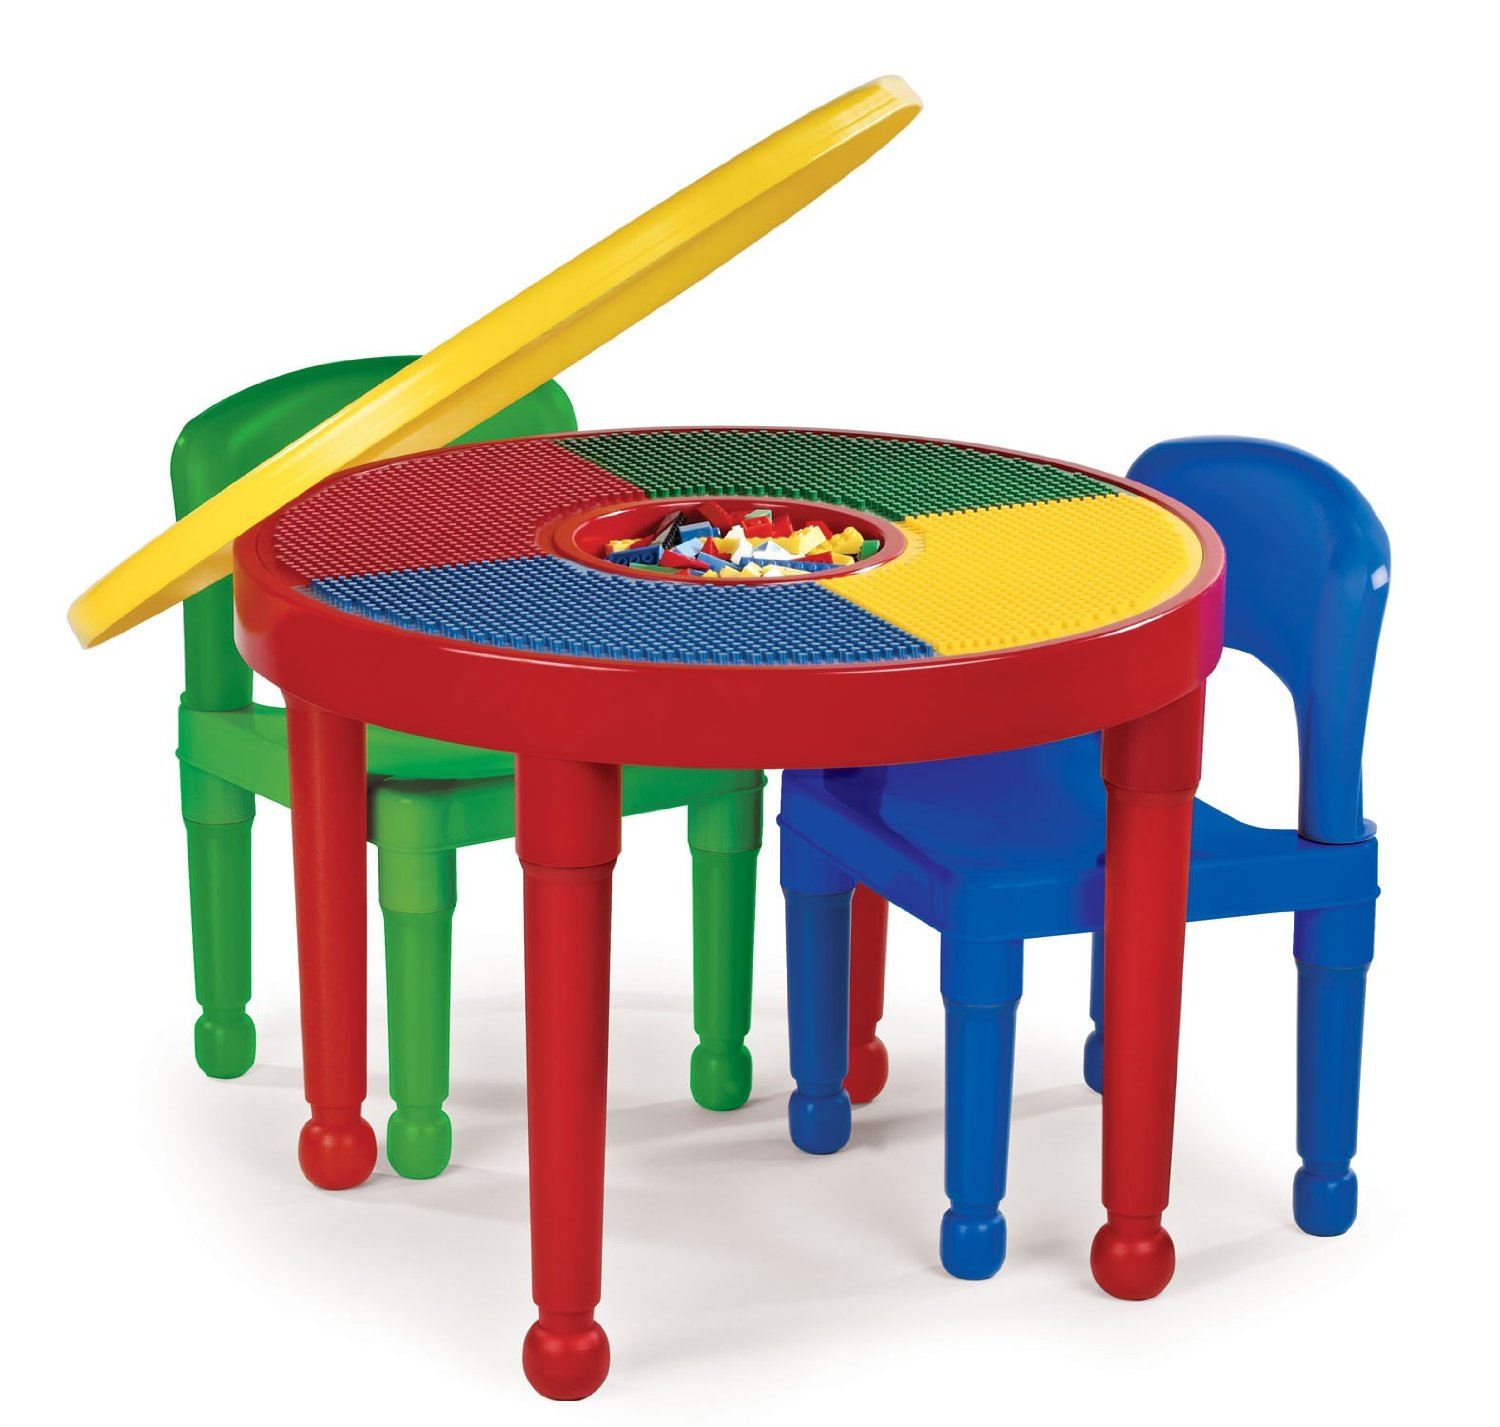 Tot tutors ct599 2 in 1 round plastic construction table for Table shopping